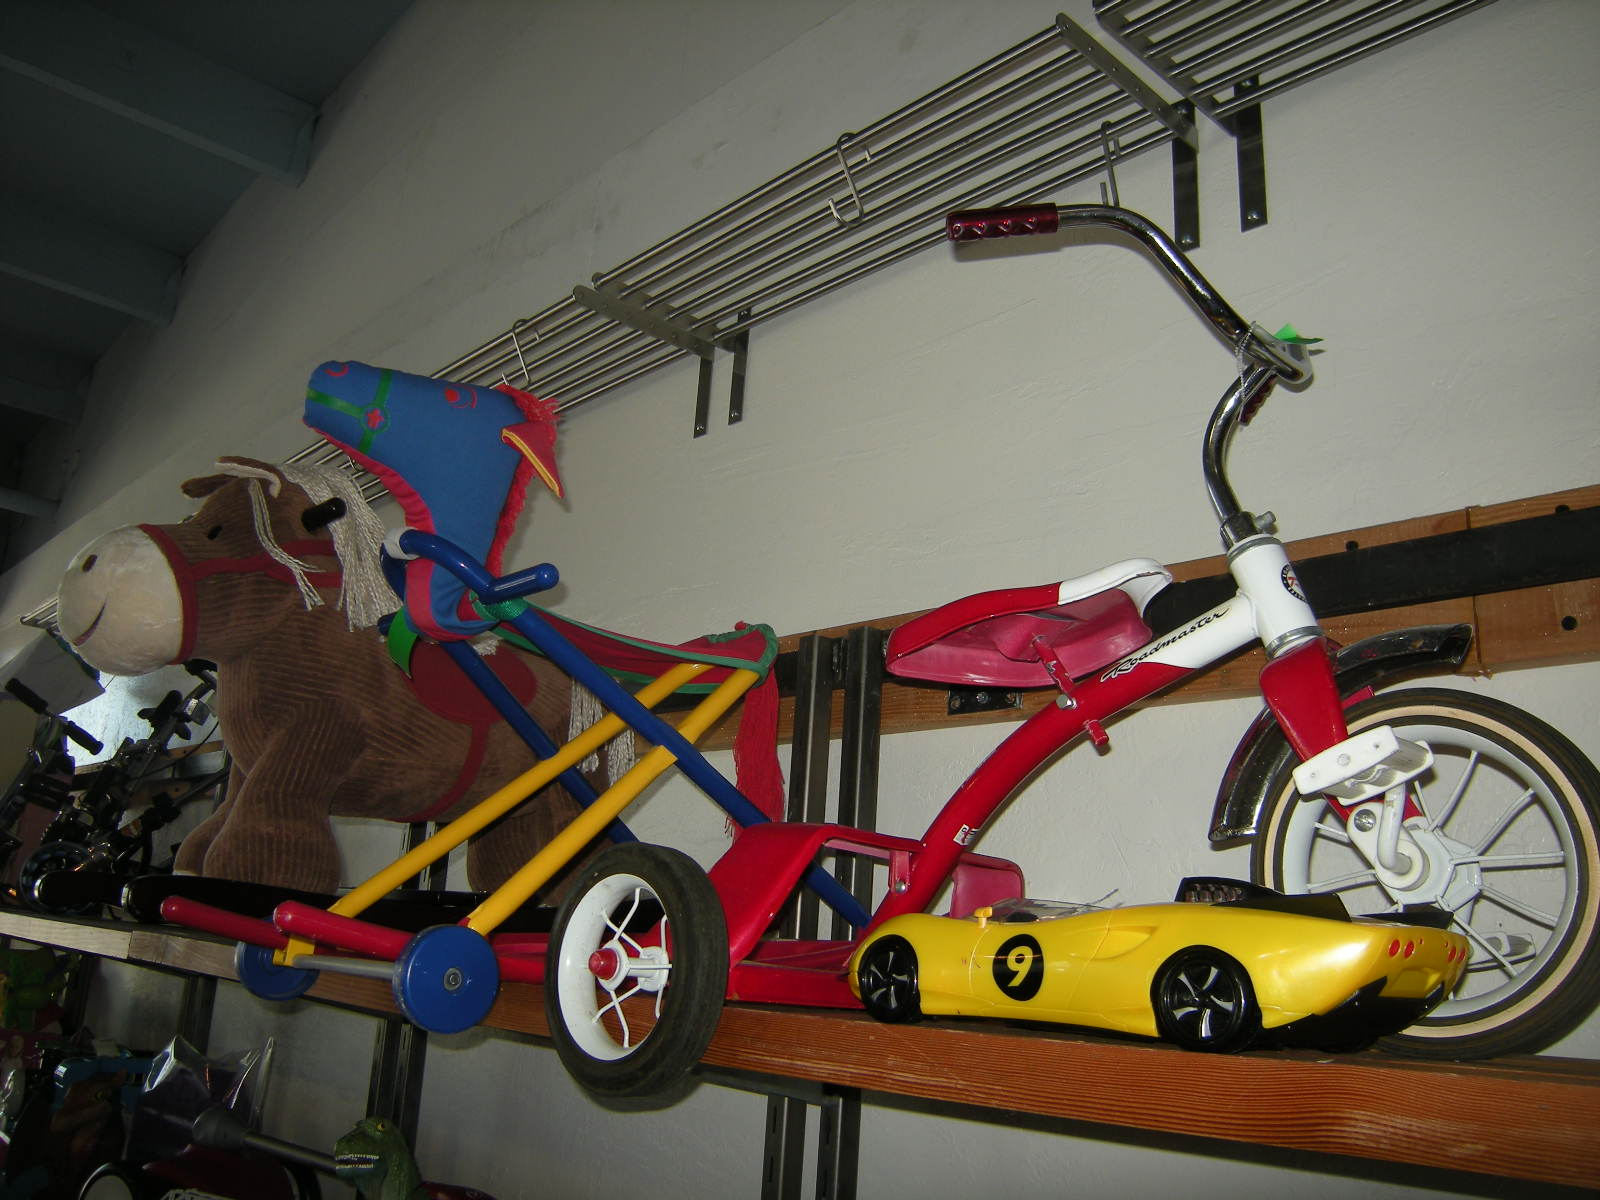 Superb img of Marin Kids Consignment: Window Wednesday see what's in store! with #BF940C color and 1600x1200 pixels